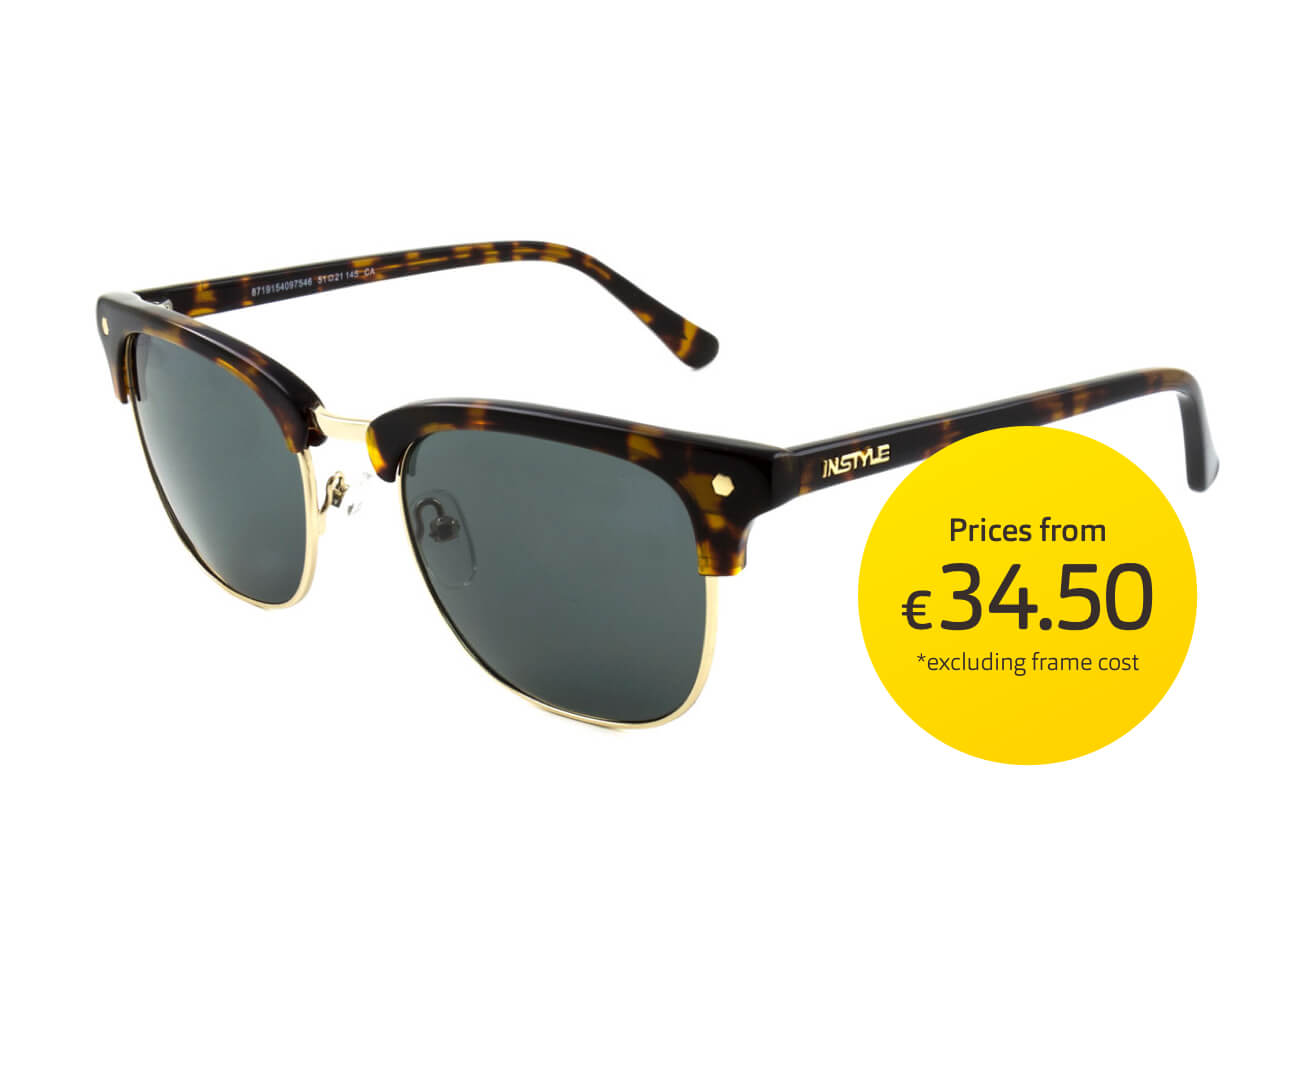 A pair of brown tortoiseshell Instyle sunglasses